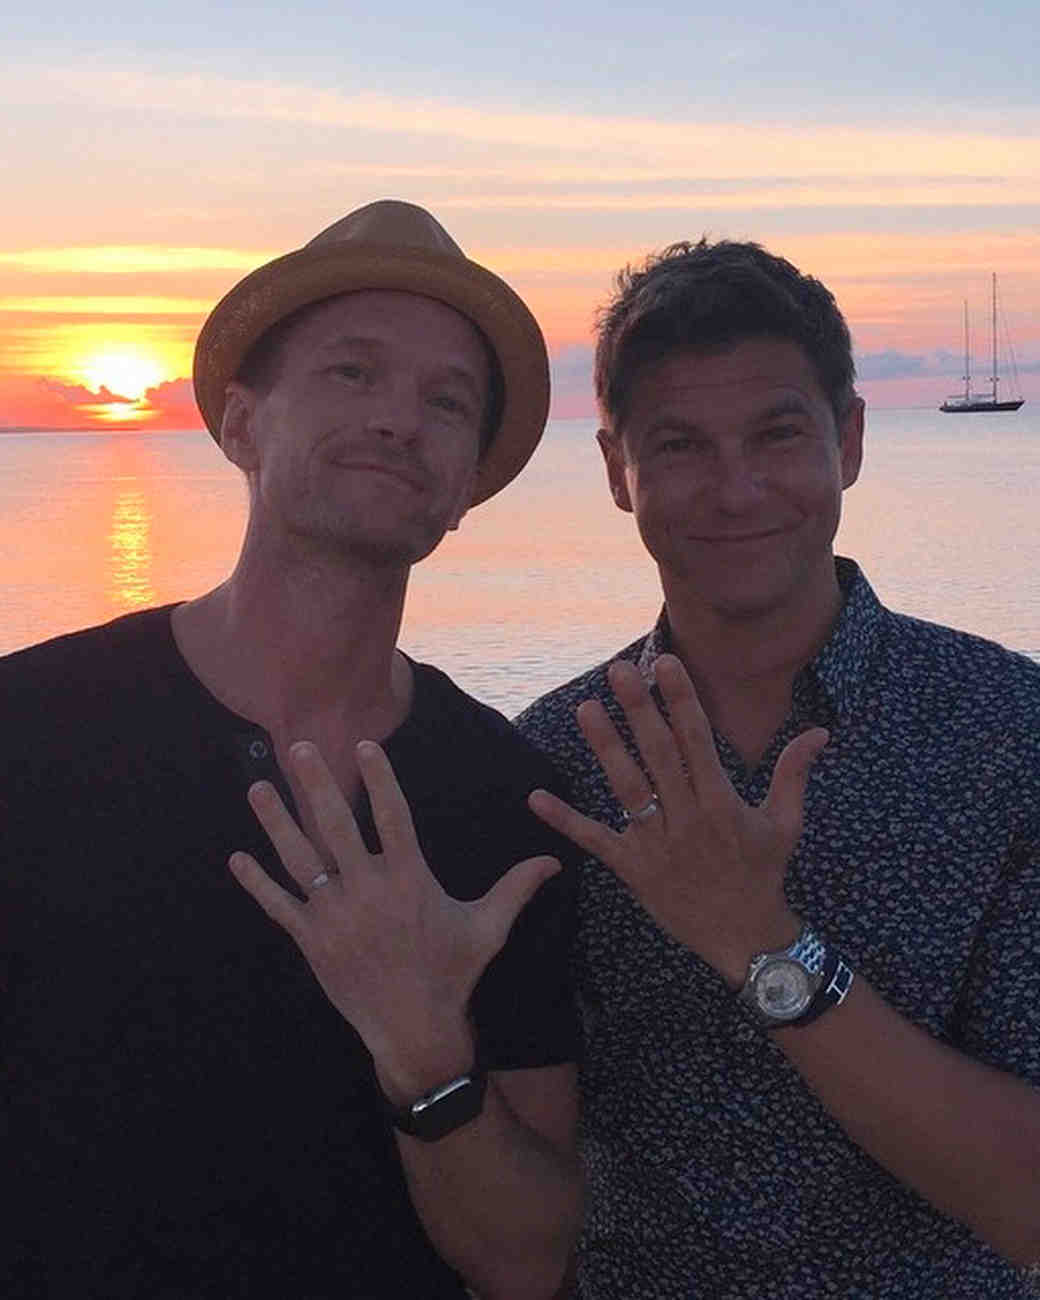 celebrity-marriage-advice-neil-patrick-harris-david-burtka-1115.jpg